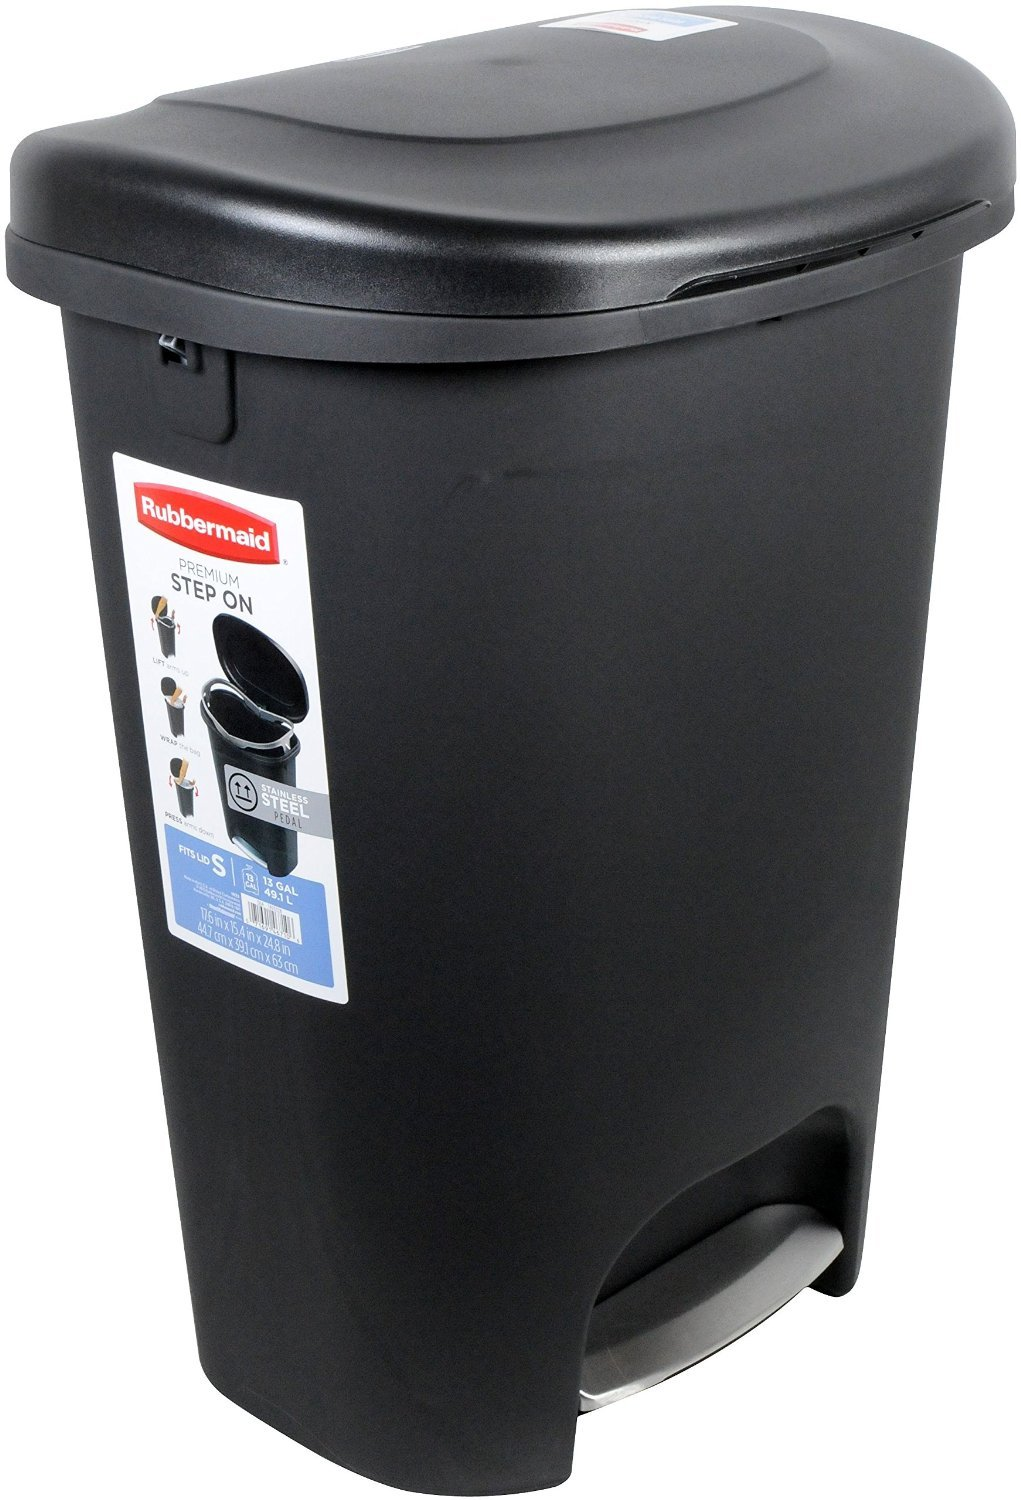 Amazon.com: Combo of Rubbermaid 13 Gallon Step-on Wastebasket ...